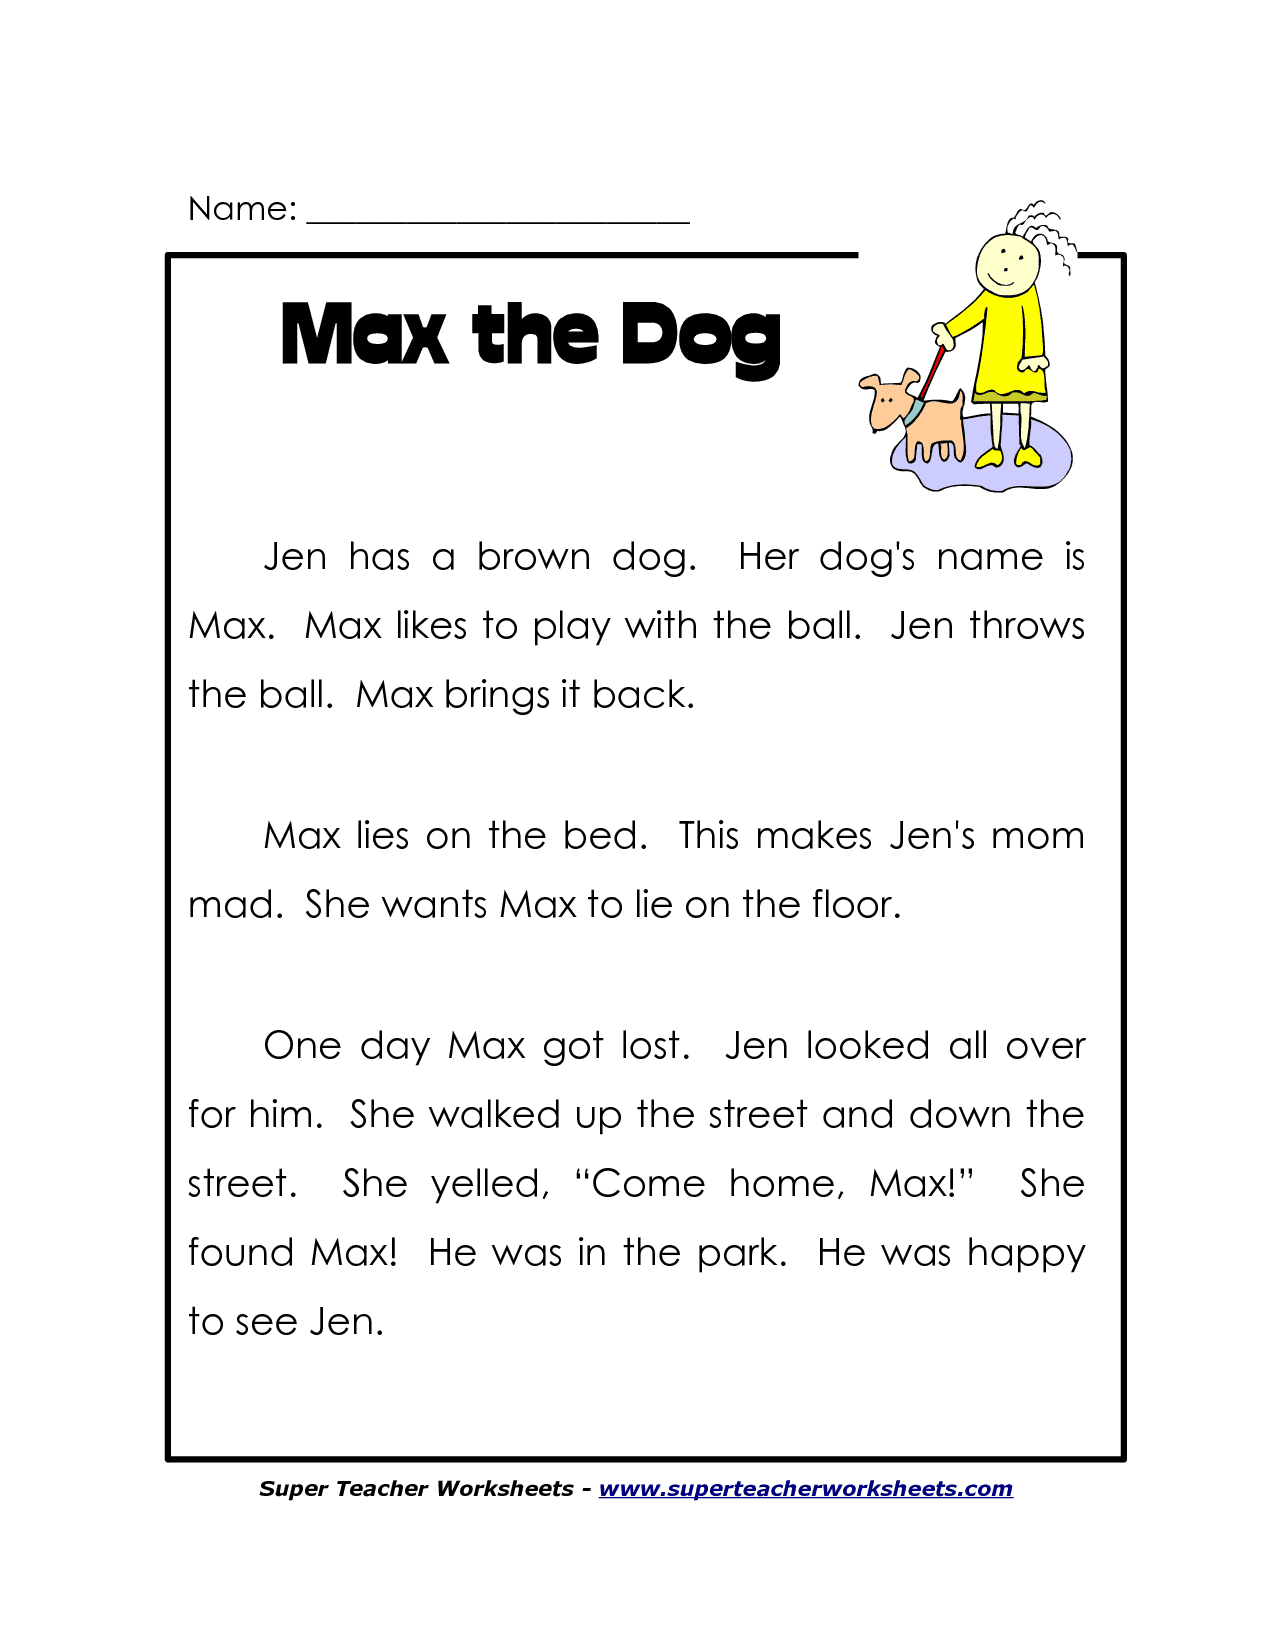 Free Printable Comprehension Worksheets For Grade 1 And 1st Grade Reading Comprehension Worksheets Pdf